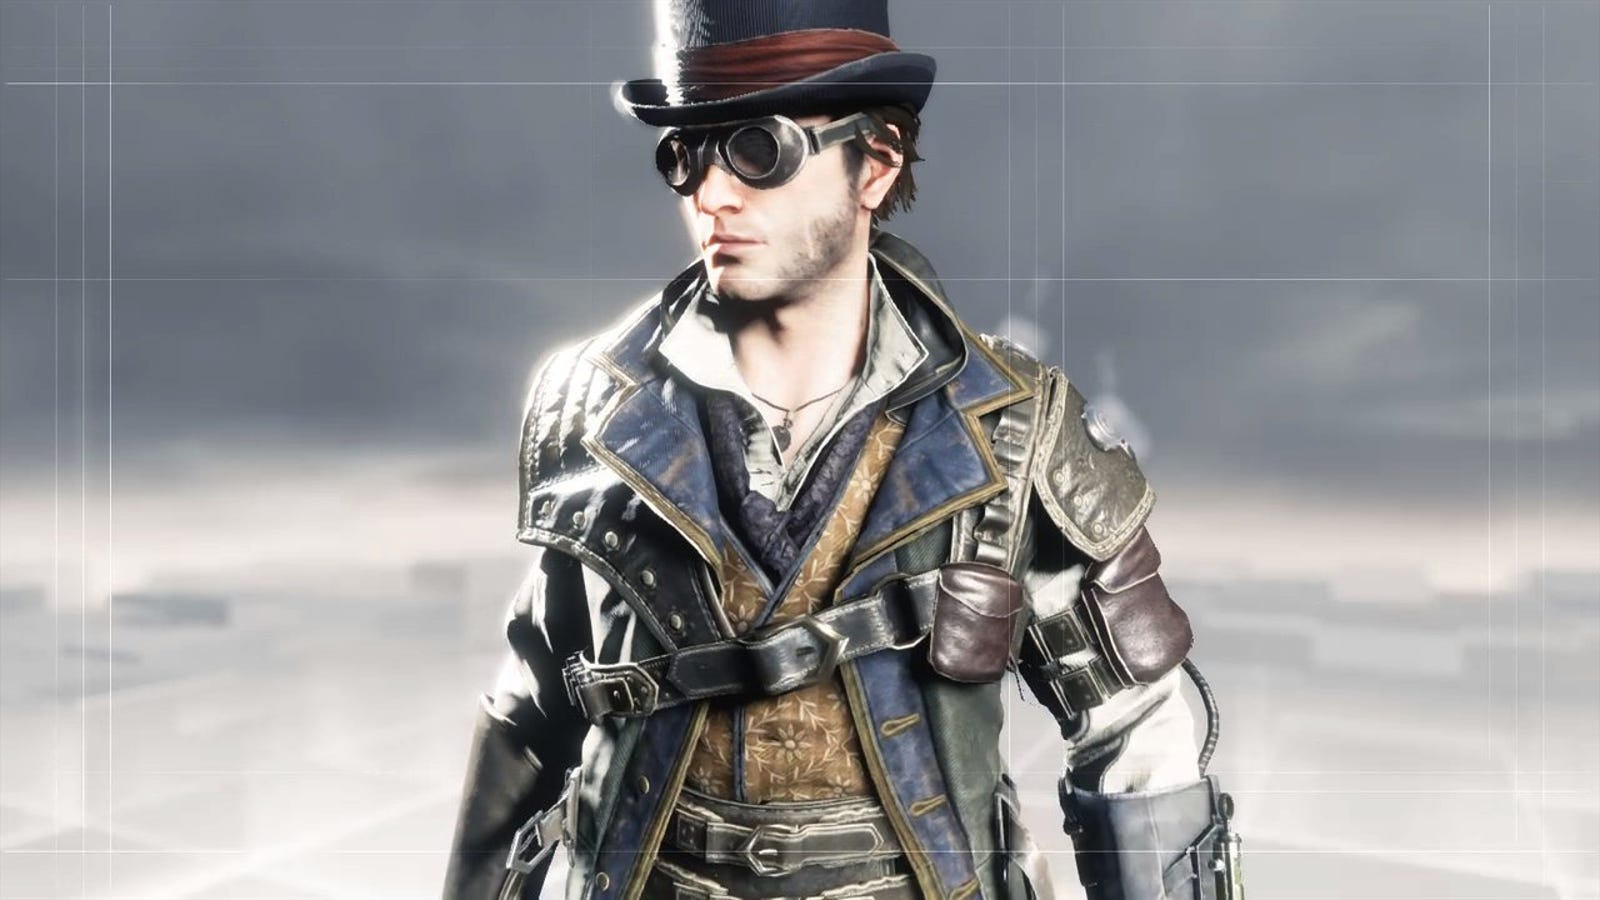 new steampunk outfits for assassin's creed syndicate are